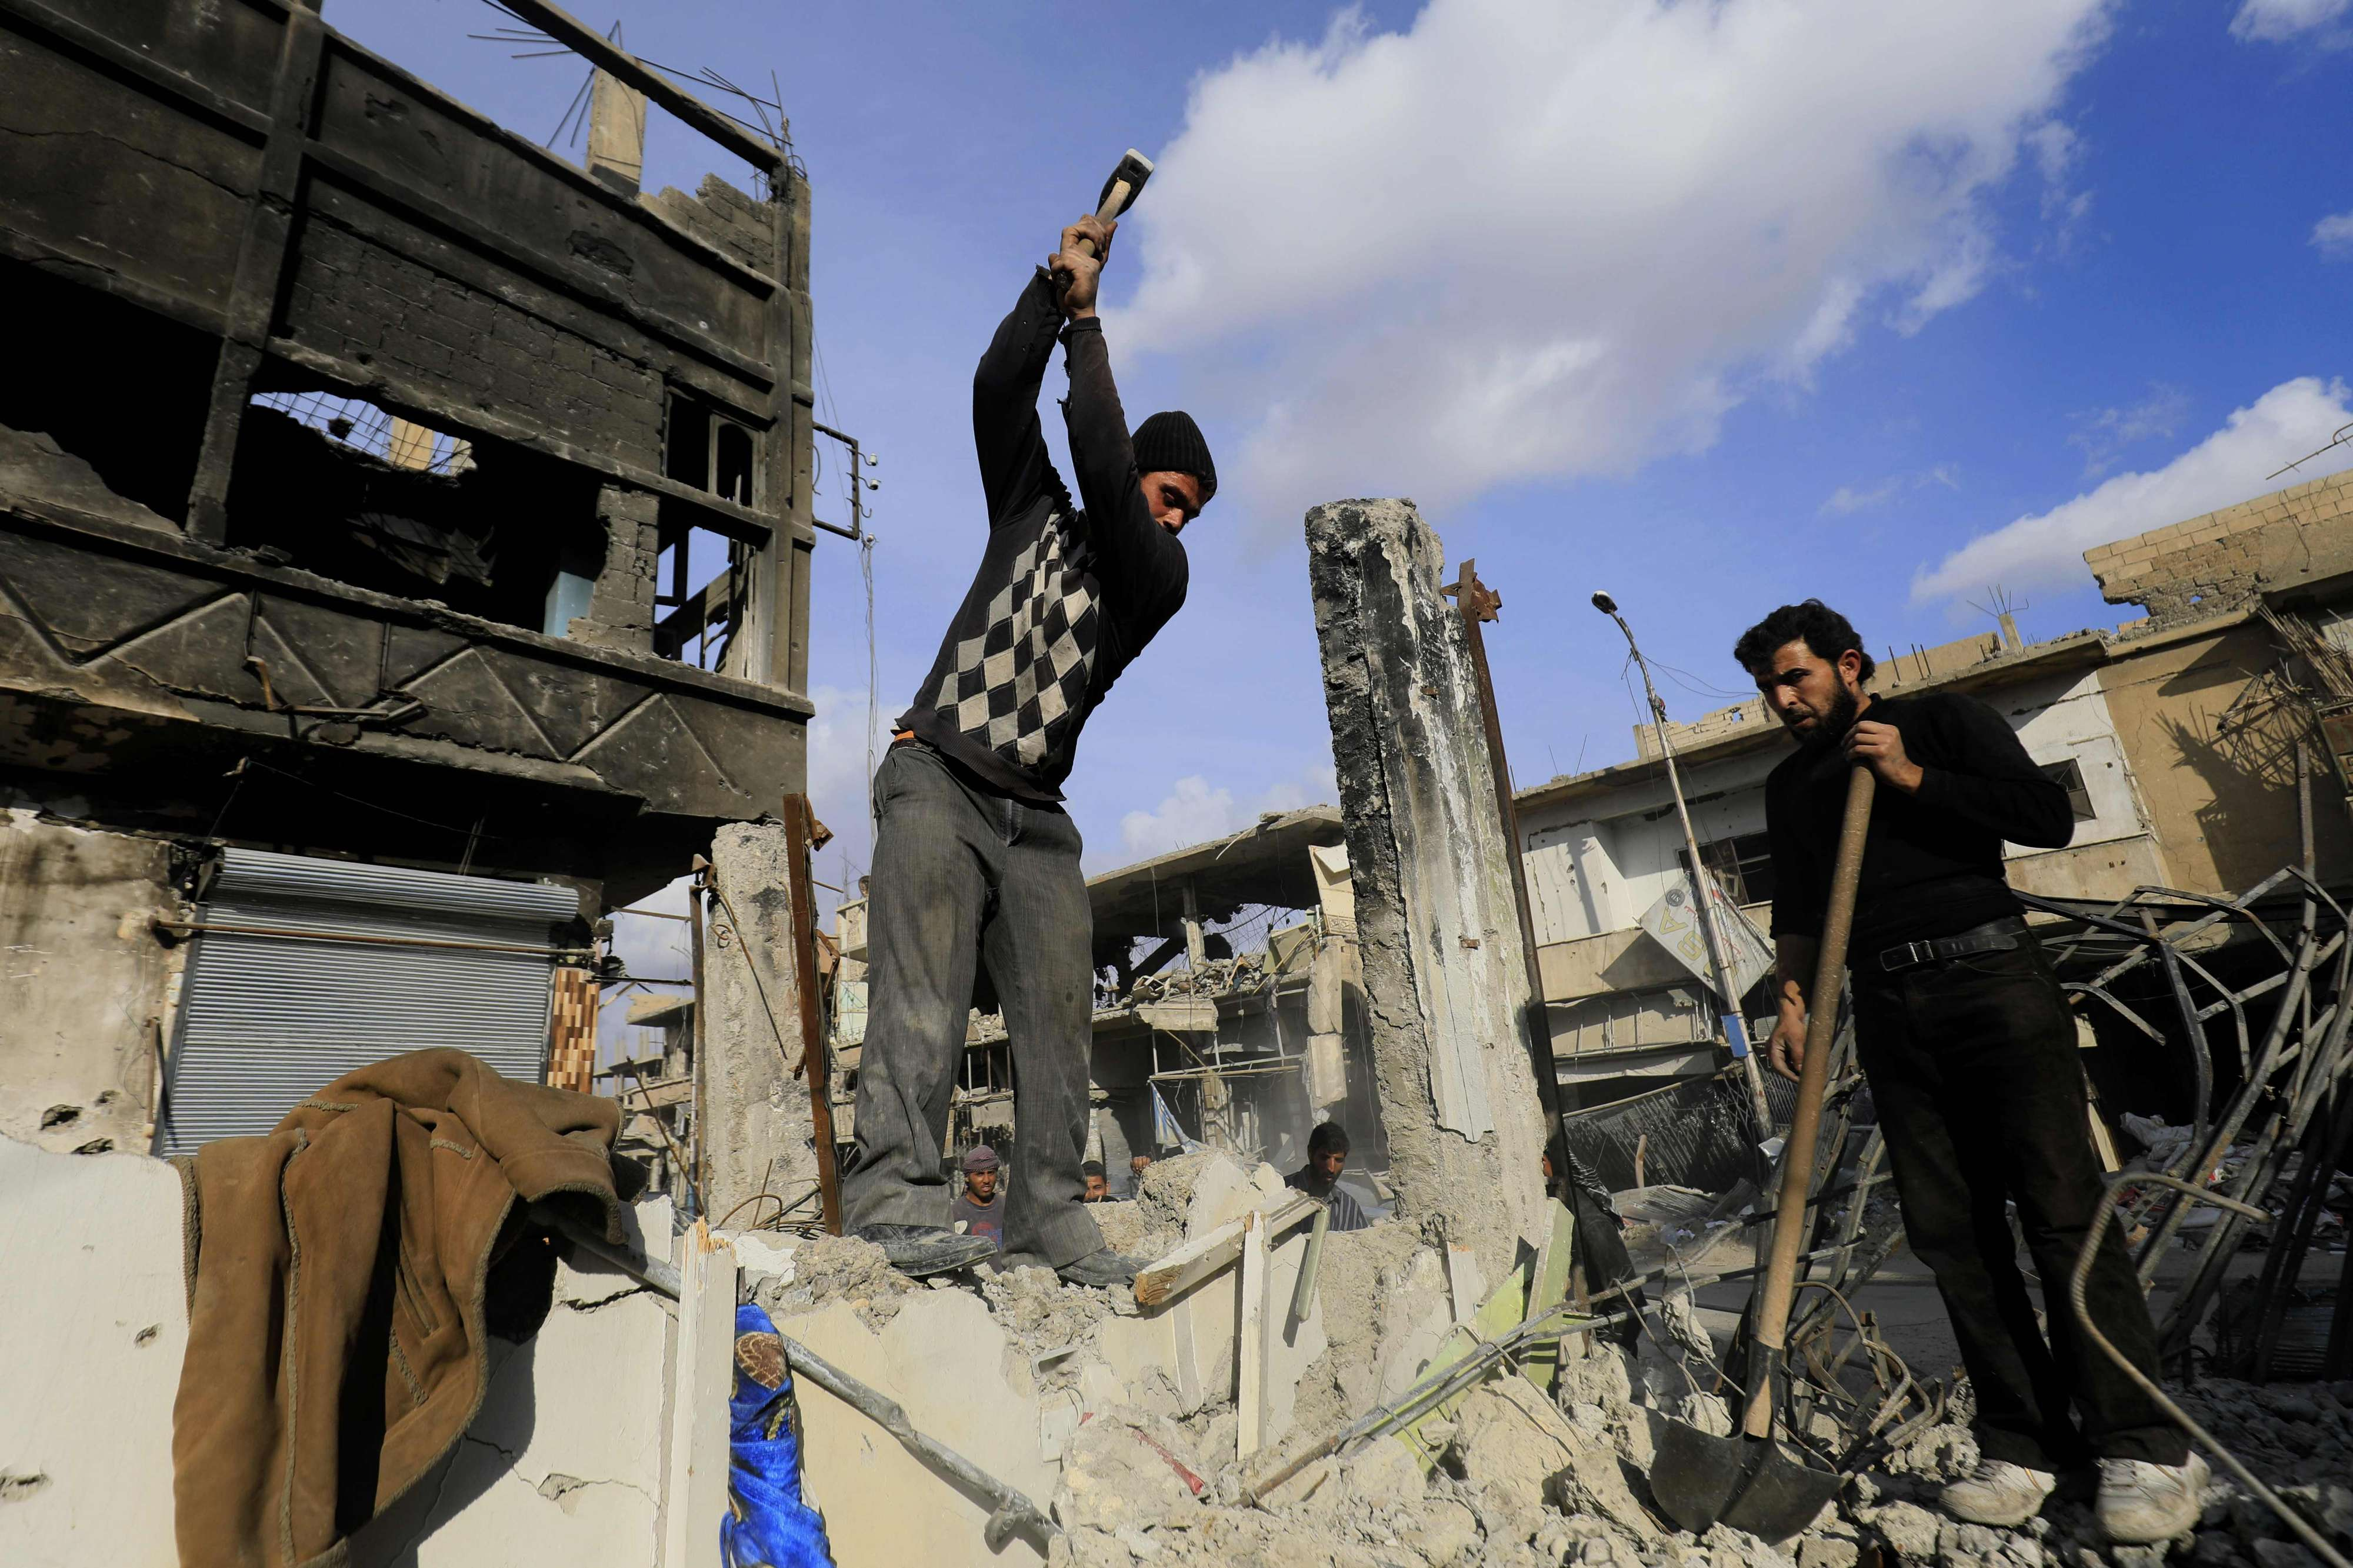 Syrian men work on reconstructing a damaged building in the northern Syrian city of Raqqa, on January 16. (AFP)